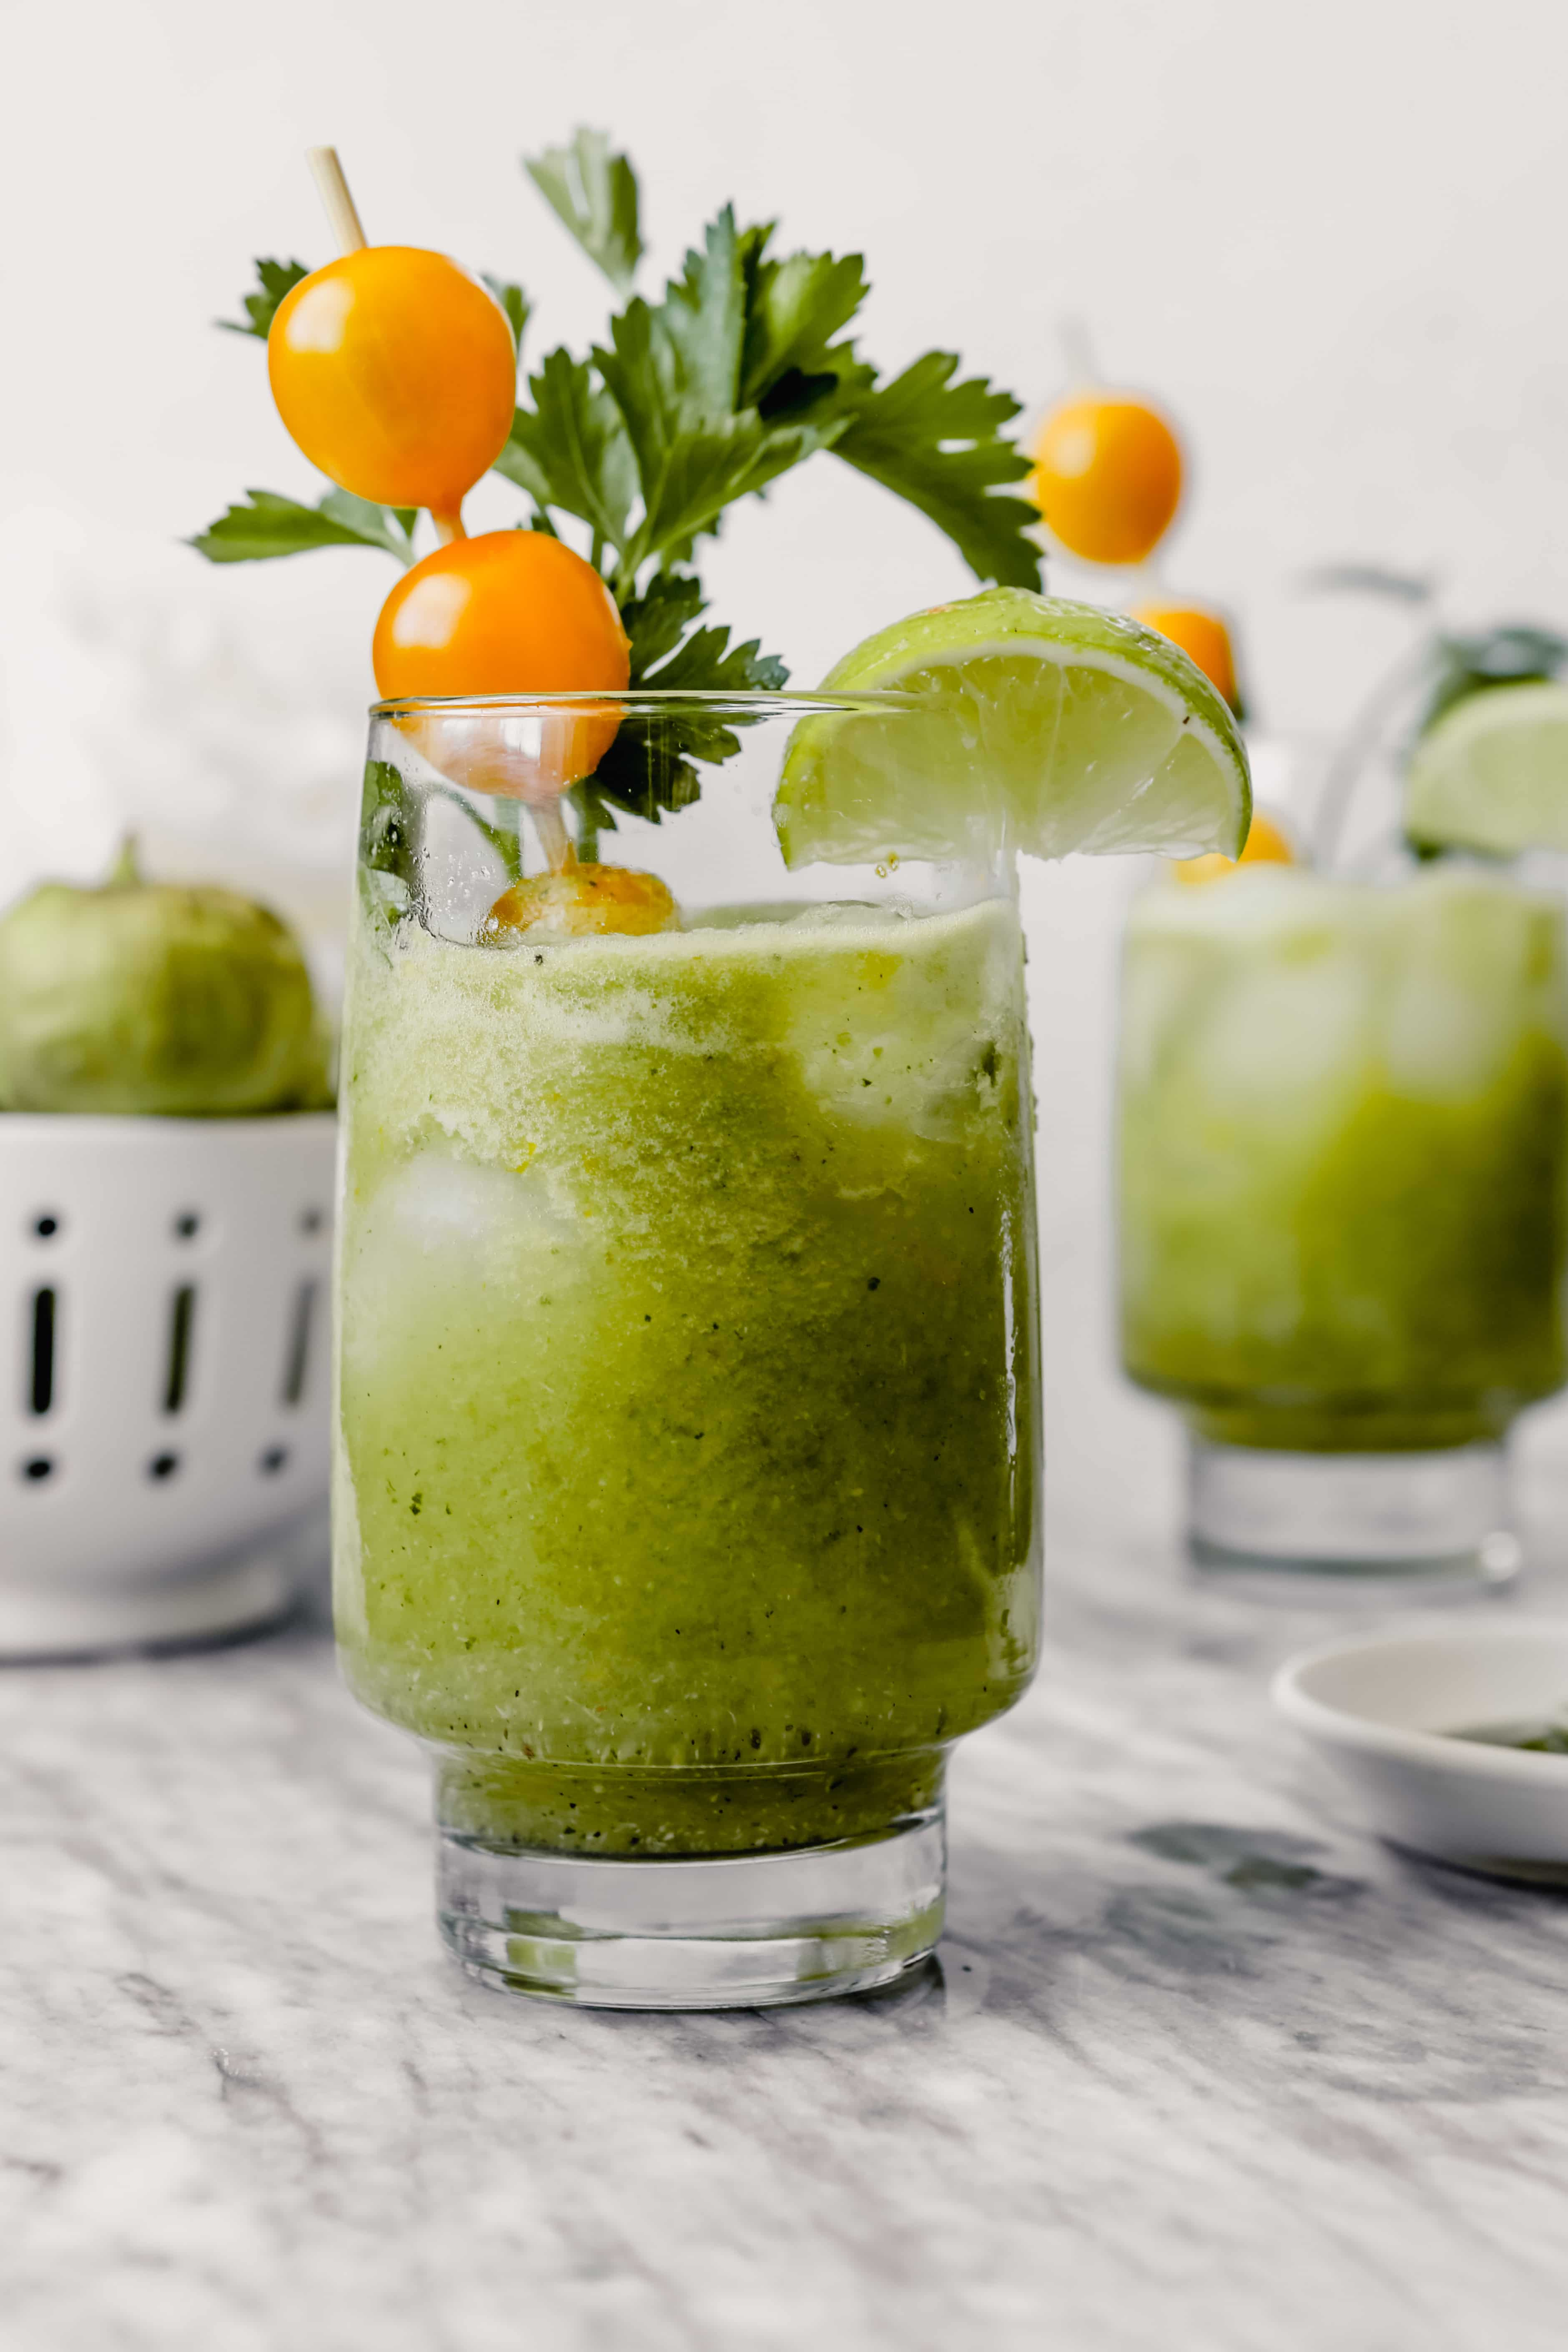 Photograph of green bloody mary in tall collins glass garnishes with yellow cherry tomatoes, herbs, lime wedge and apple slice.